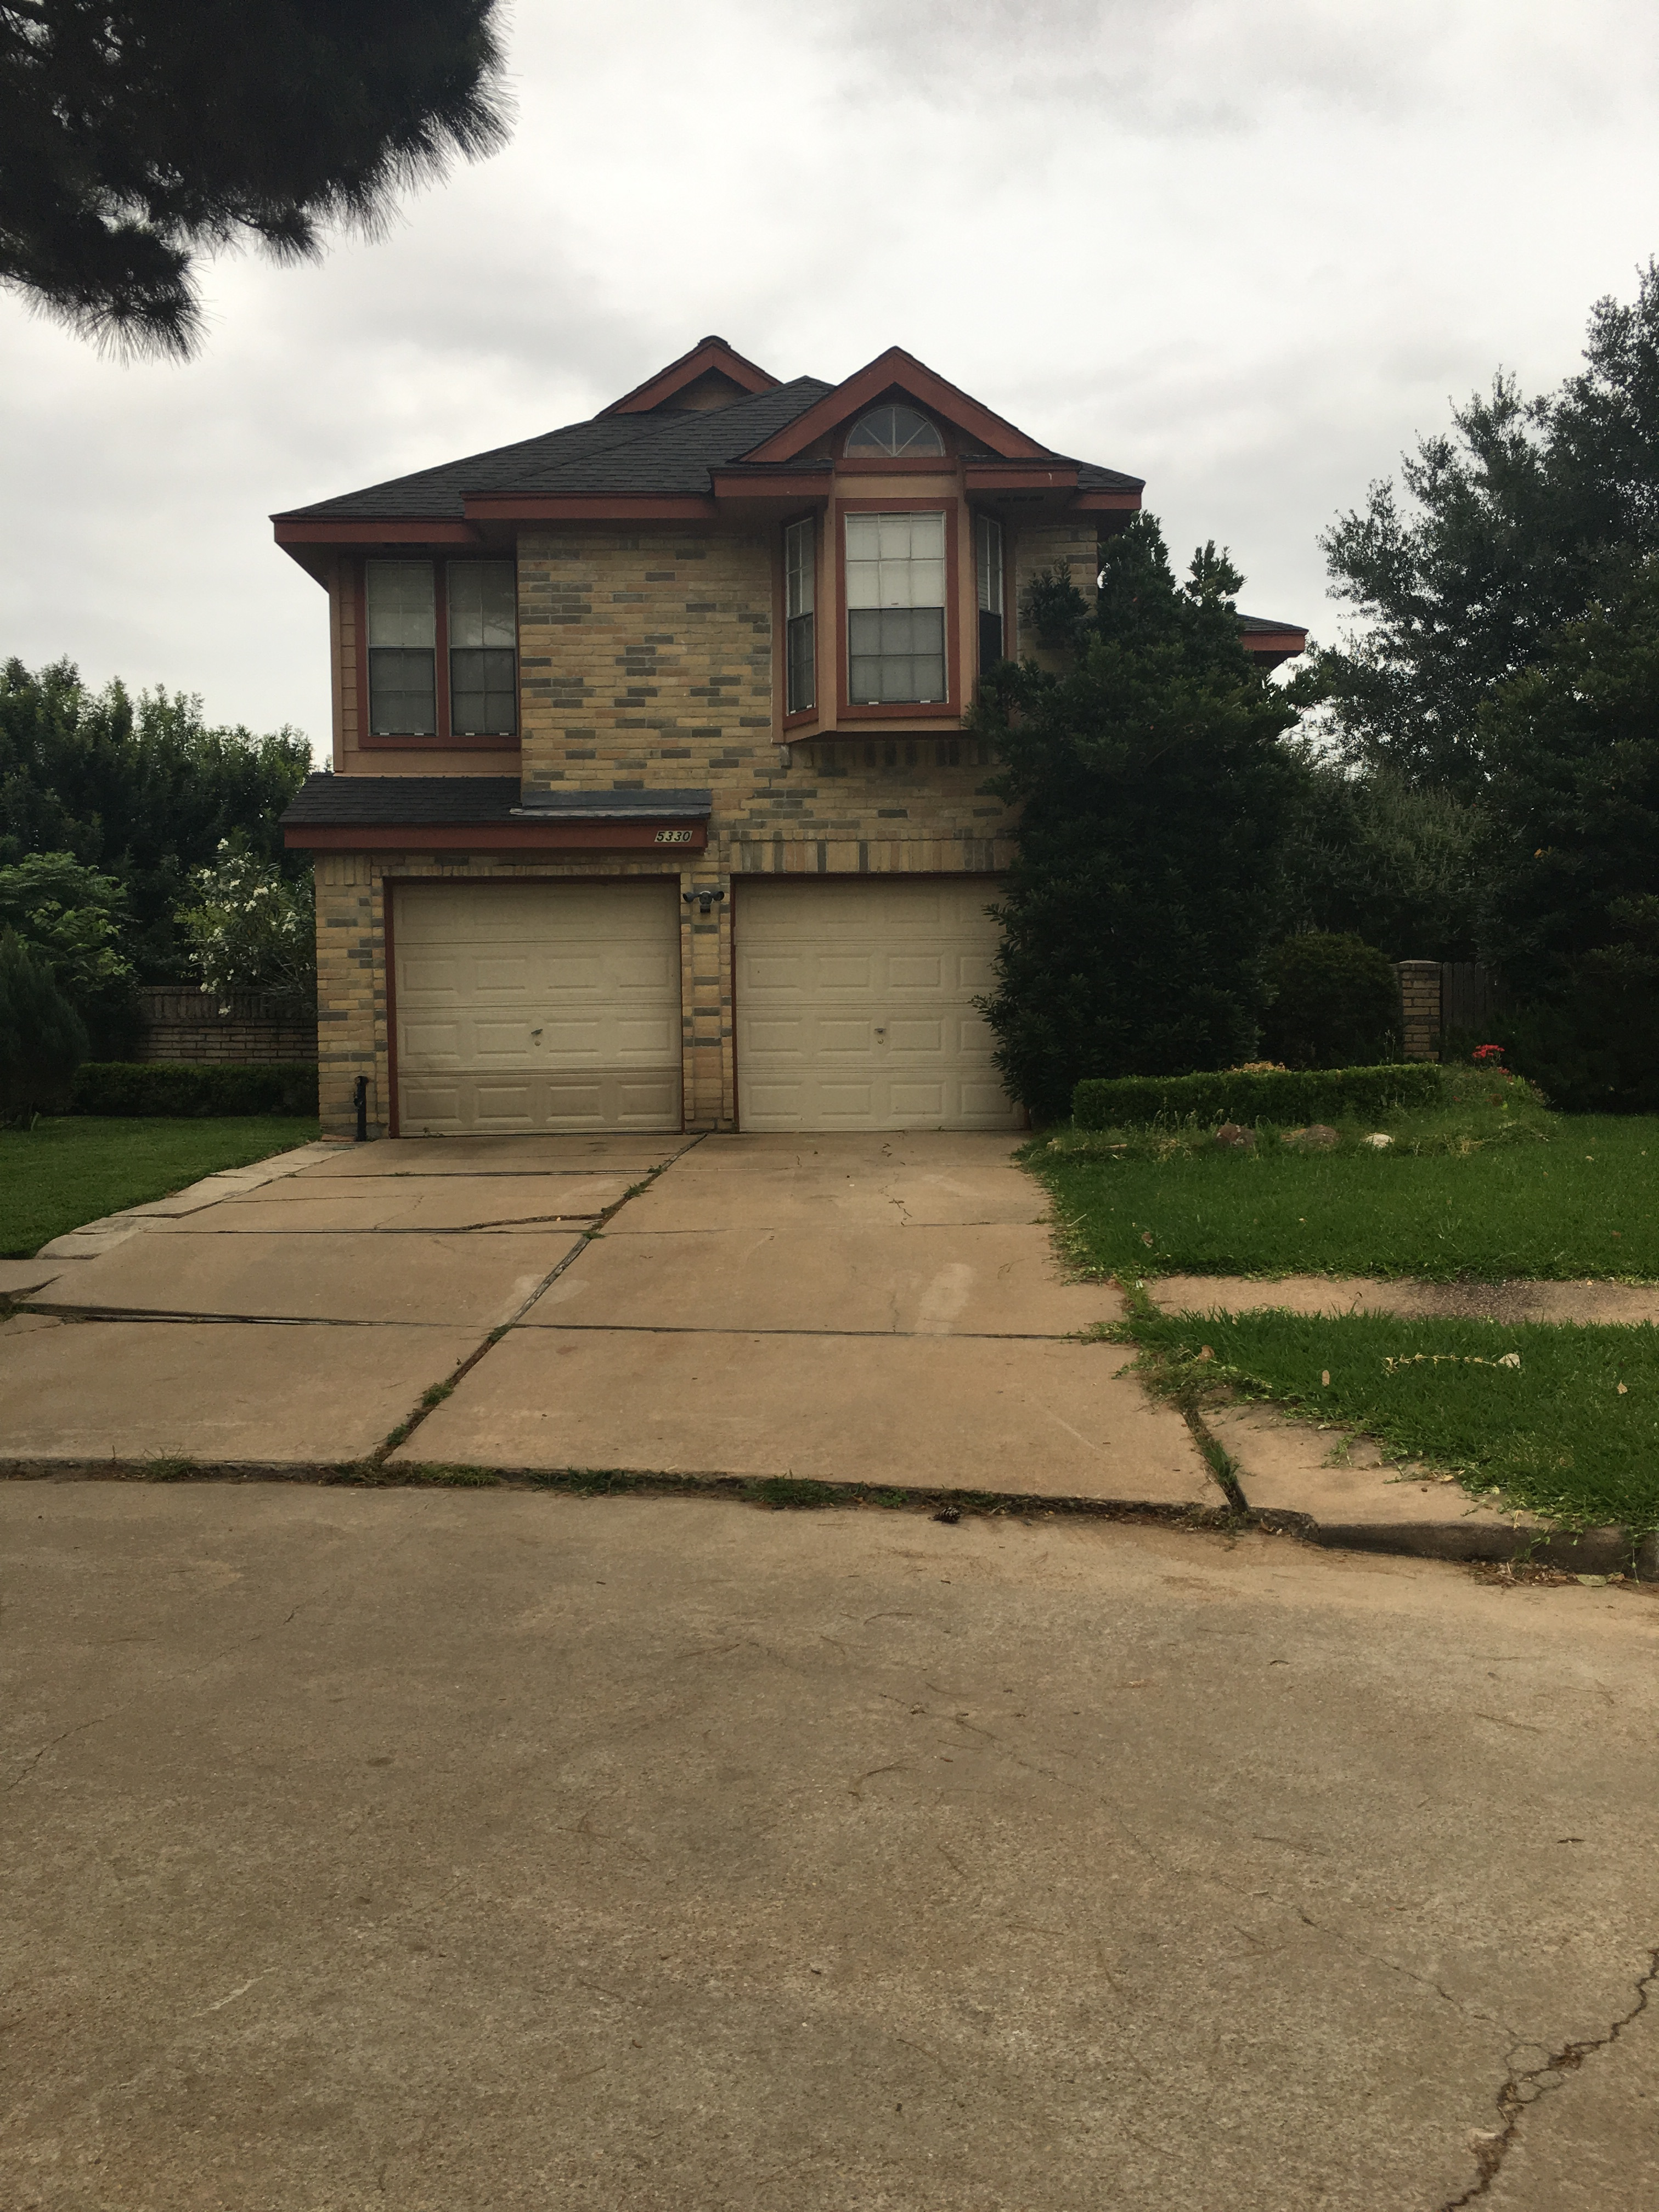 Photo of 5330 Mountain Forest Dr, Katy, TX, 77449